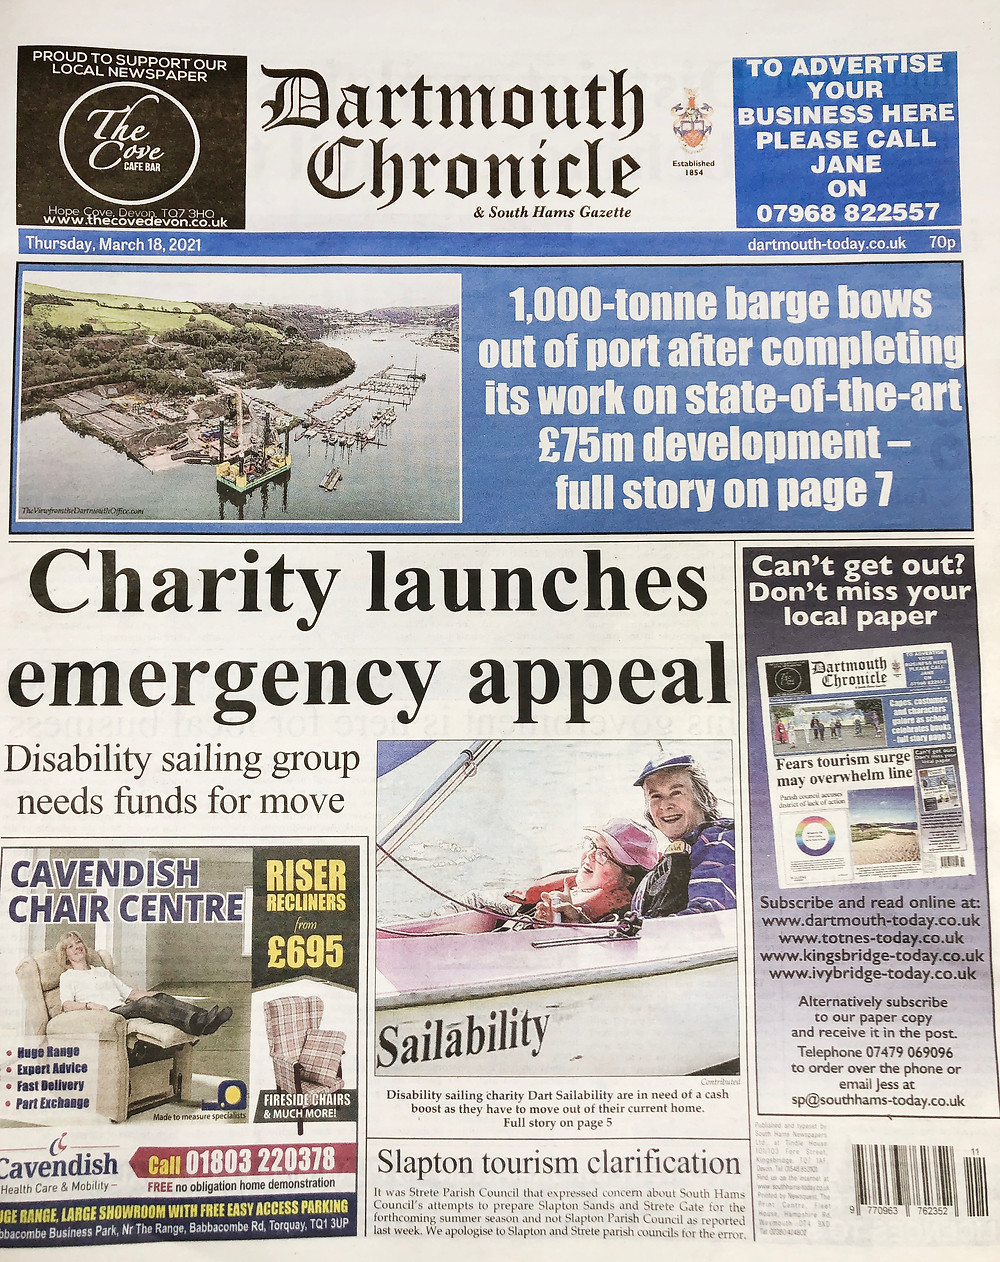 Copy of the Dartmouth Chronicle front page, re Dart Sailability launching appeal